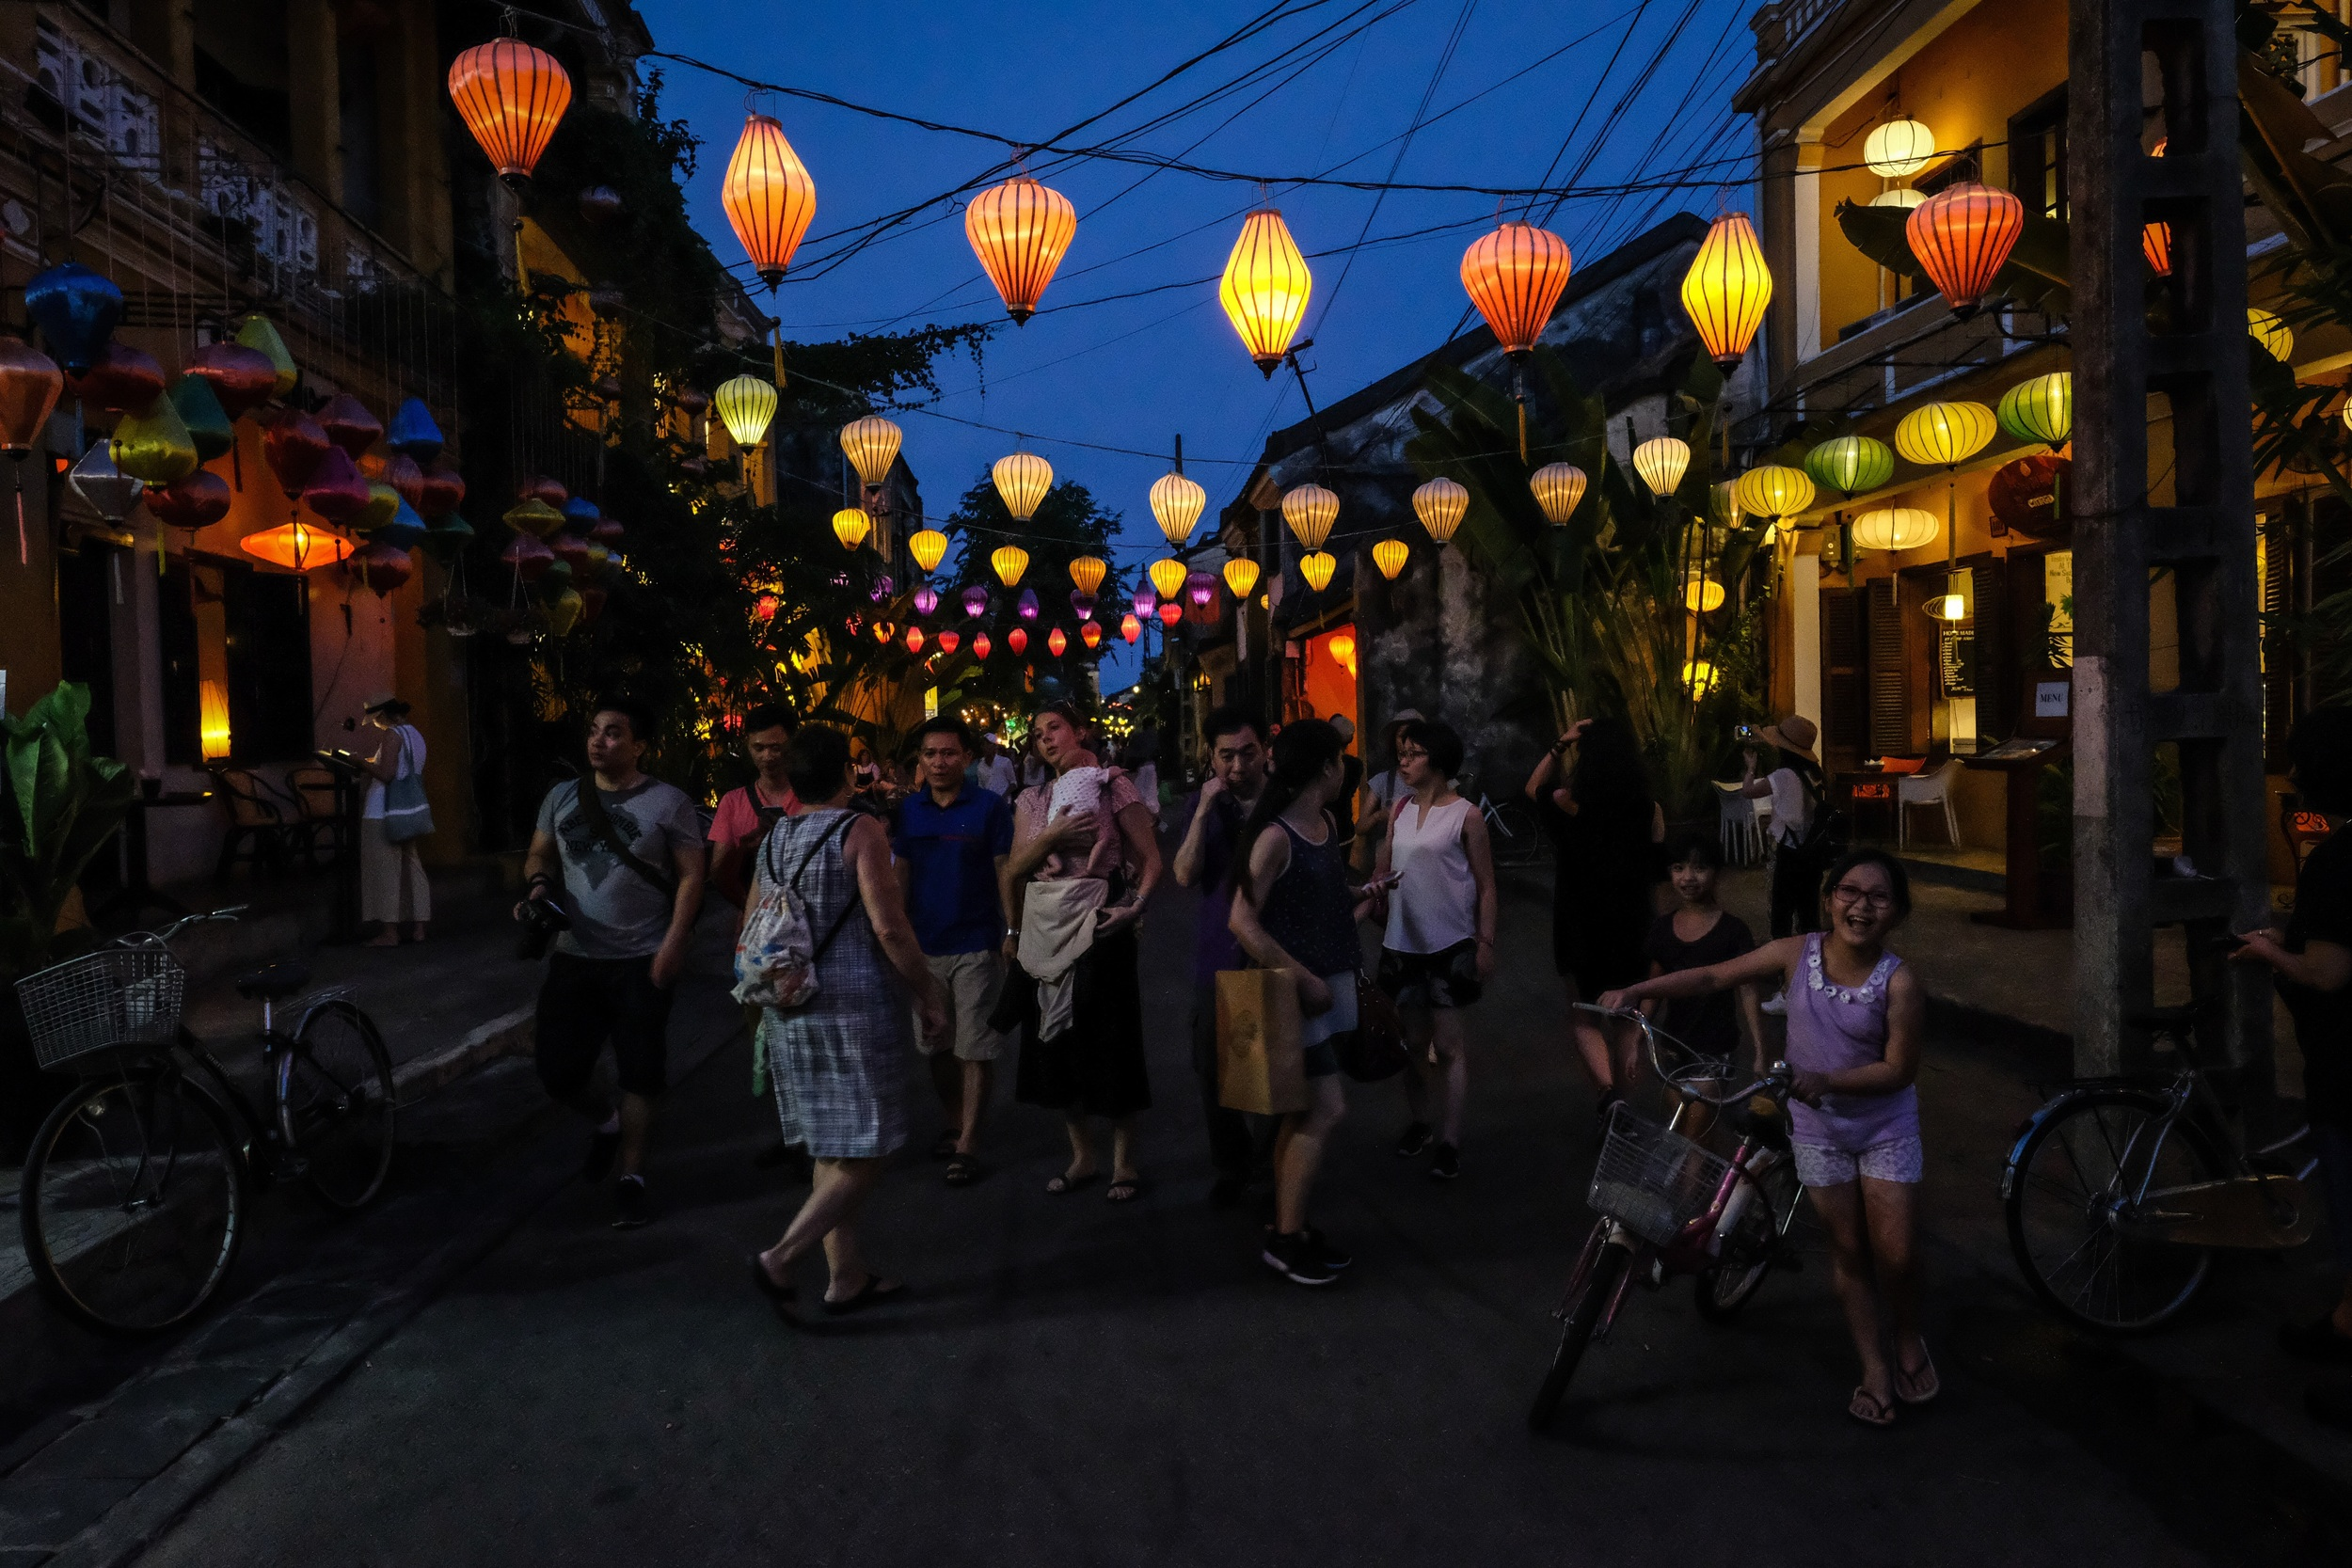 The streets of Ancient Town are charmingly lit. Lanterns wherever possible.